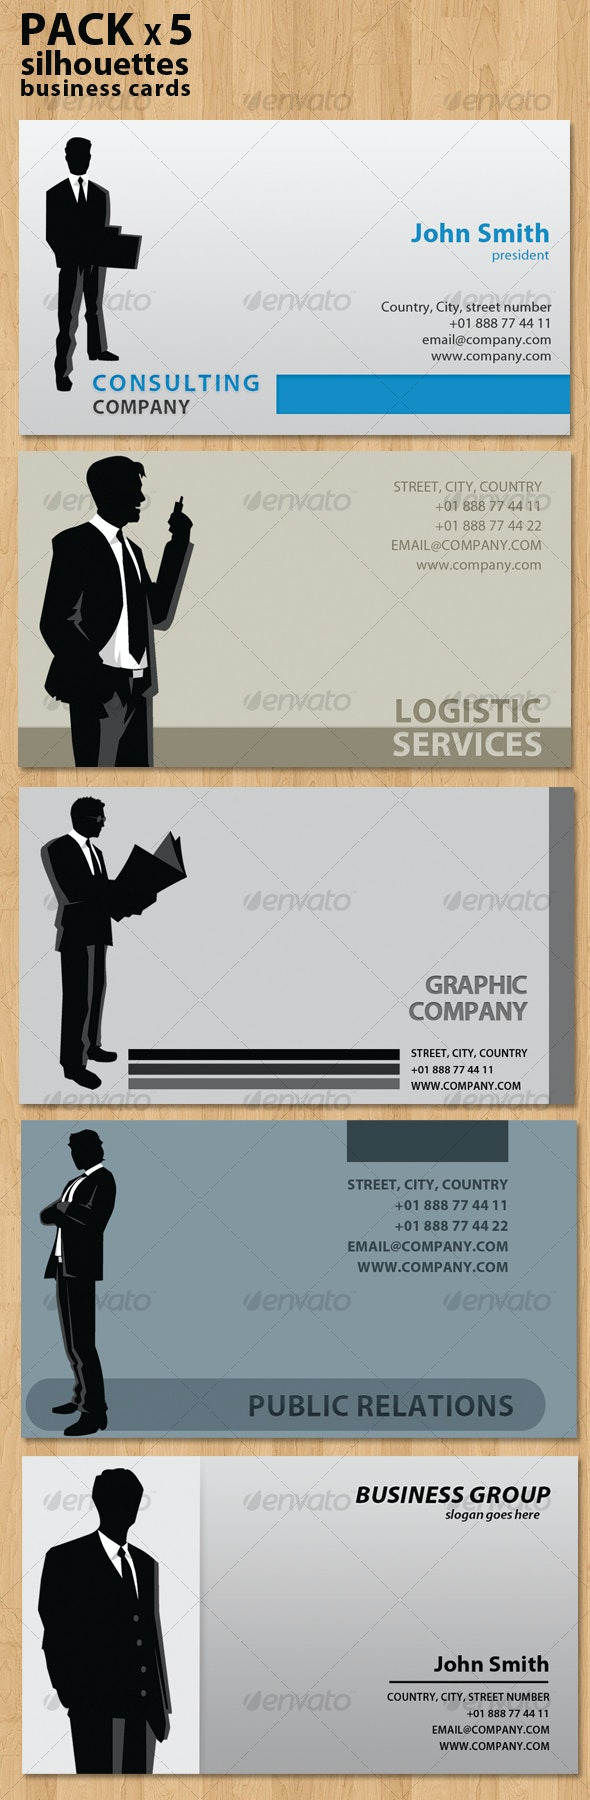 Silhouettes Business Cards very flexible - Business Cards Print Templates